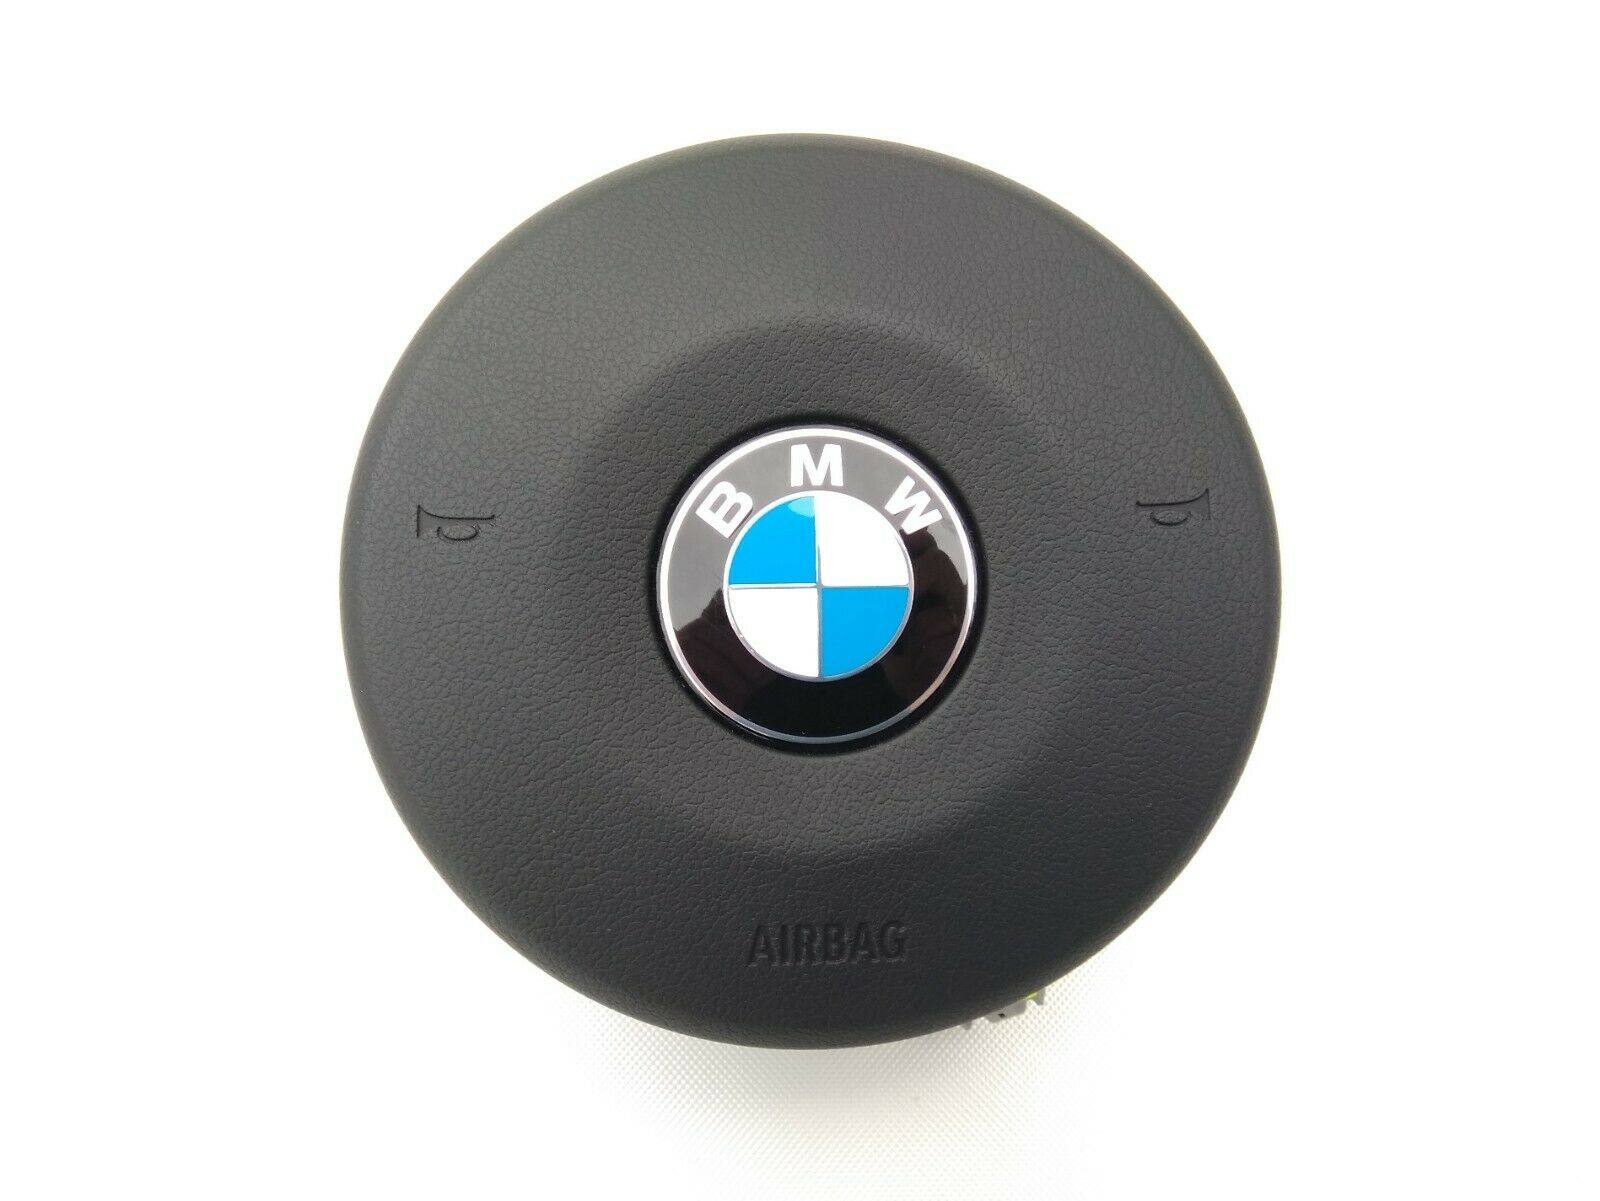 Bmw F10 F20 F31 F21 F22 F11 F07 F32 F25 F30 F15 M Sport Steering Wheel Airbag